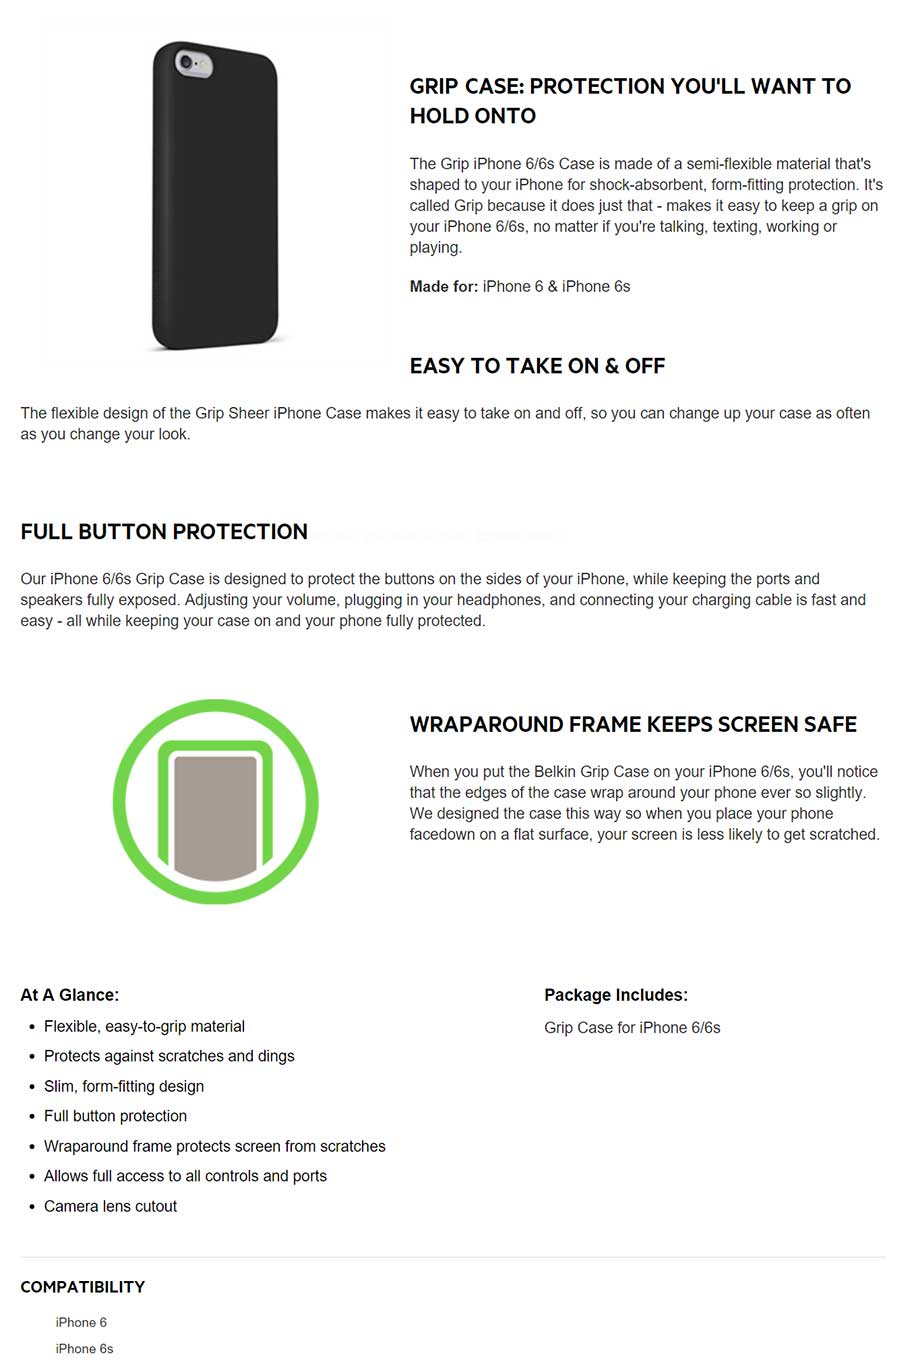 belkin iphone 6 grip case info